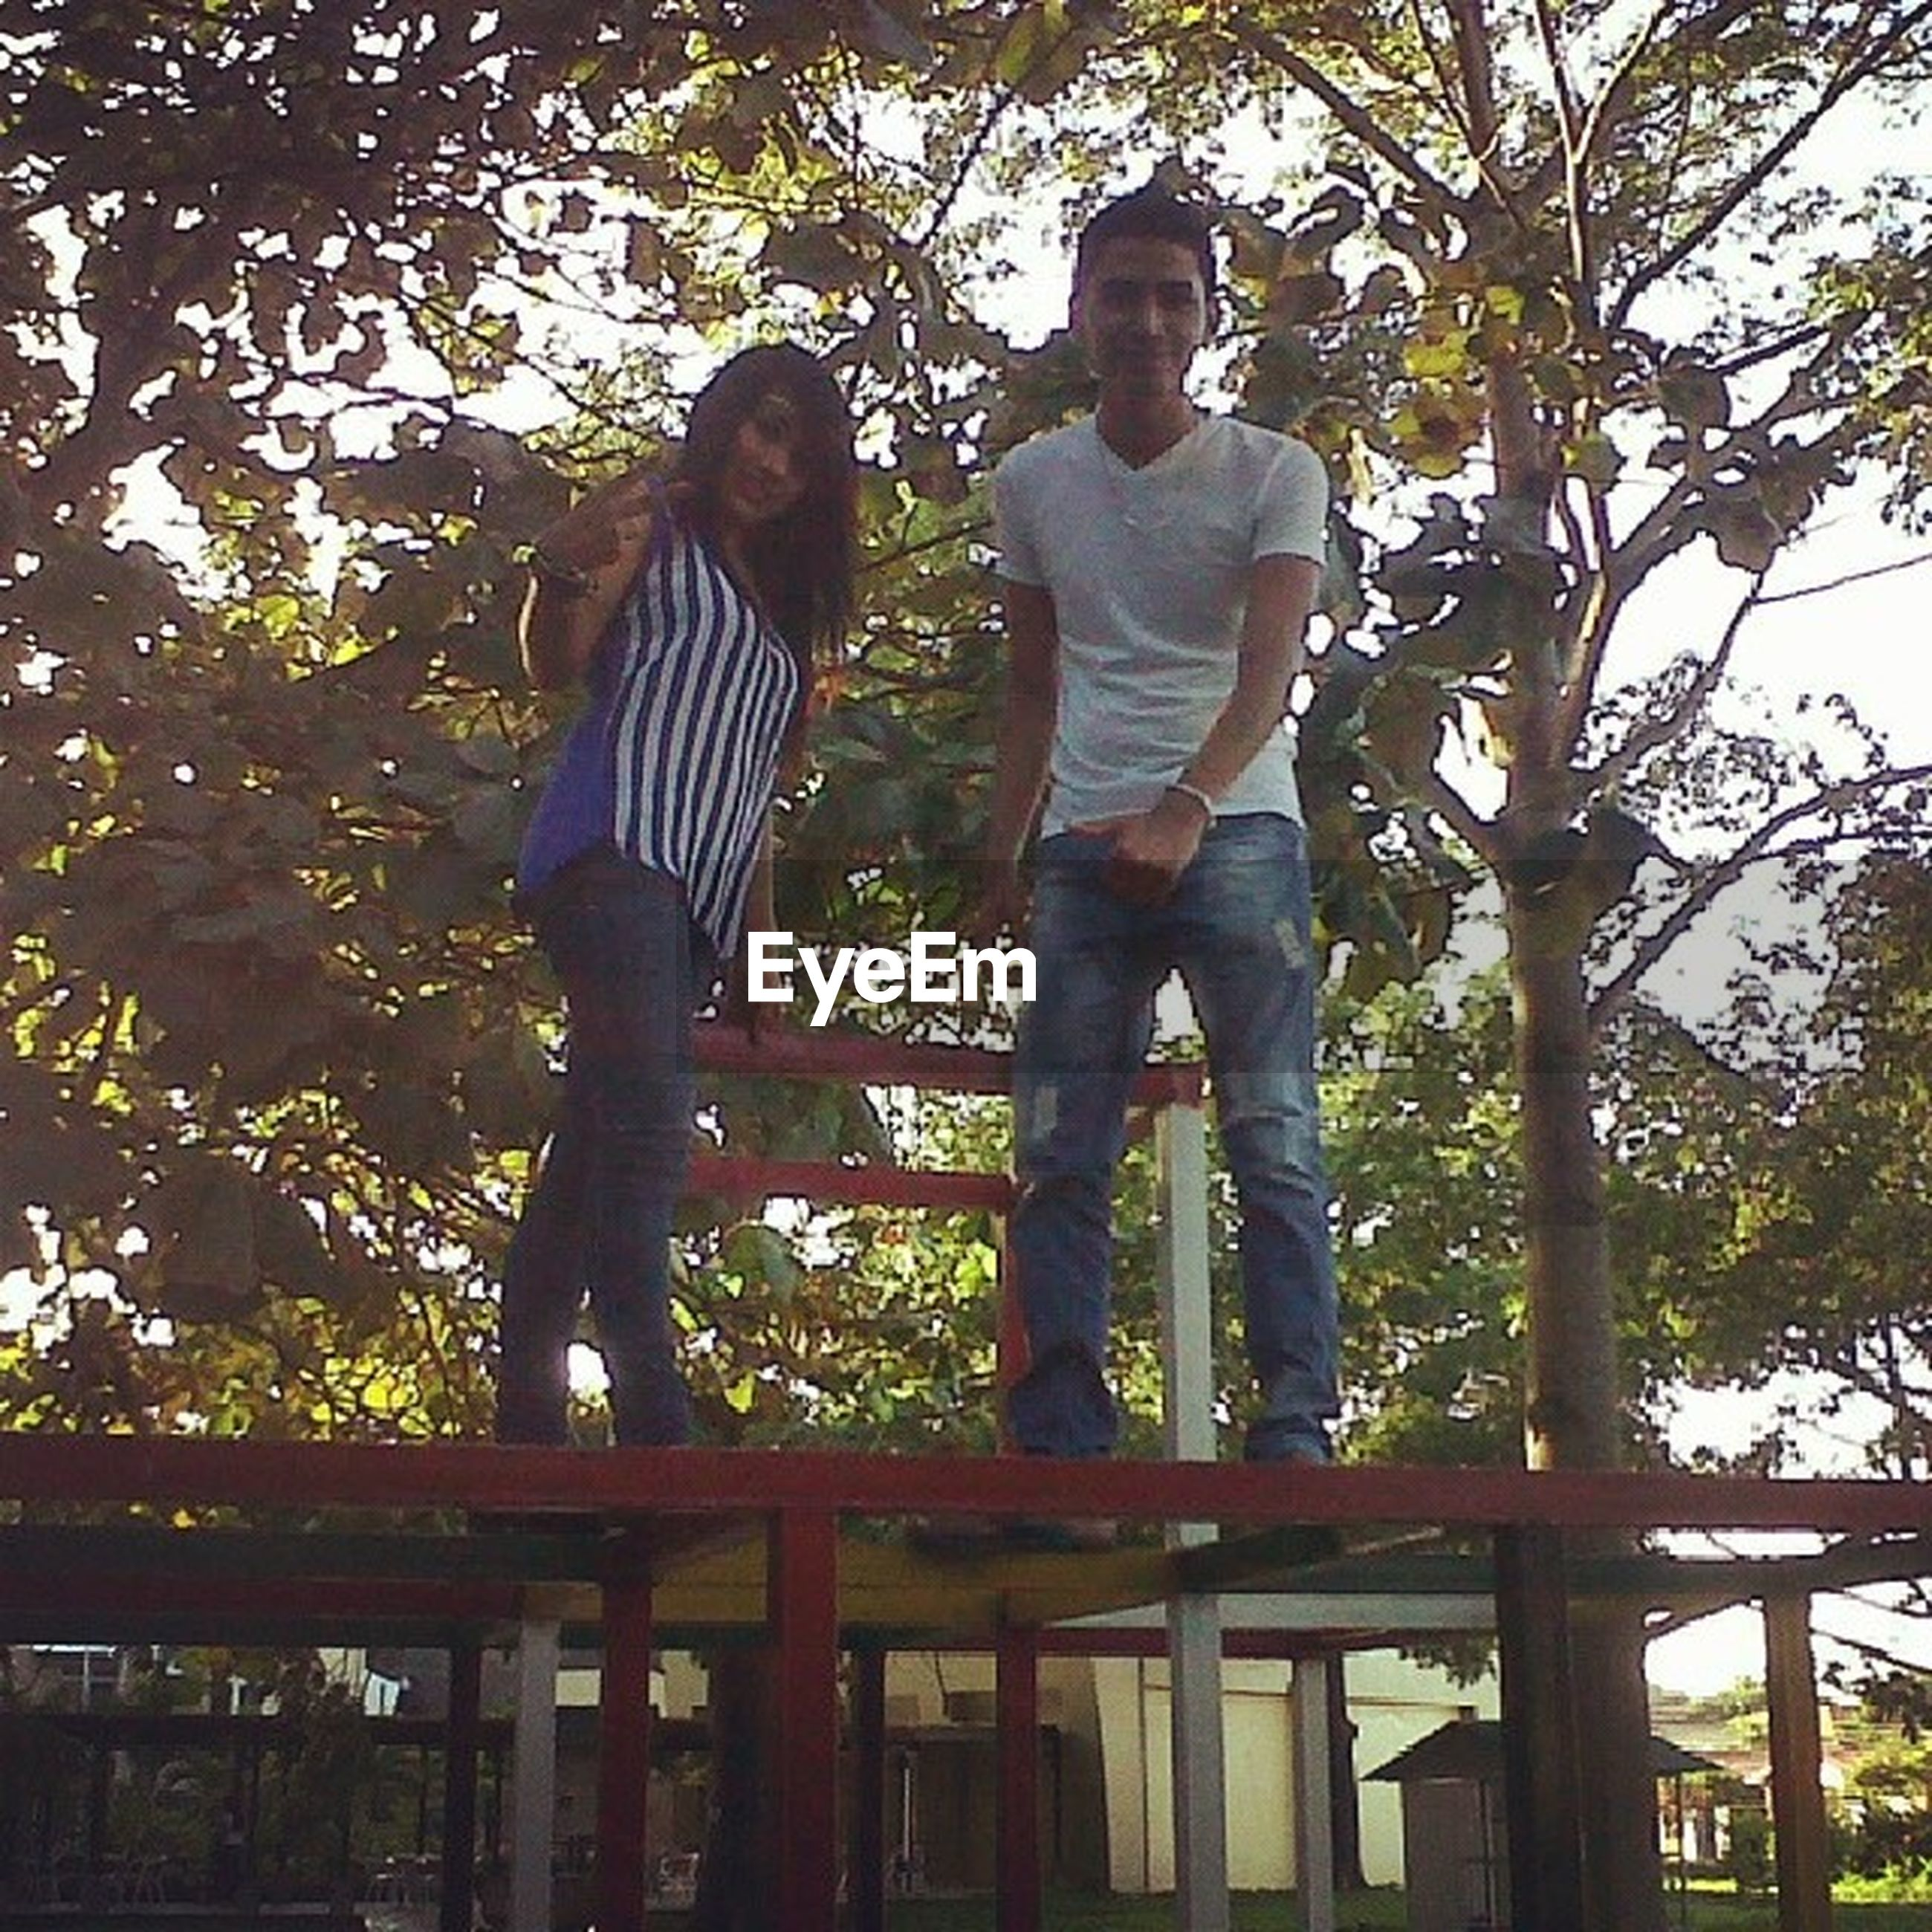 tree, lifestyles, leisure activity, full length, casual clothing, standing, young adult, low angle view, person, three quarter length, railing, park - man made space, young women, branch, front view, day, outdoors, wood - material